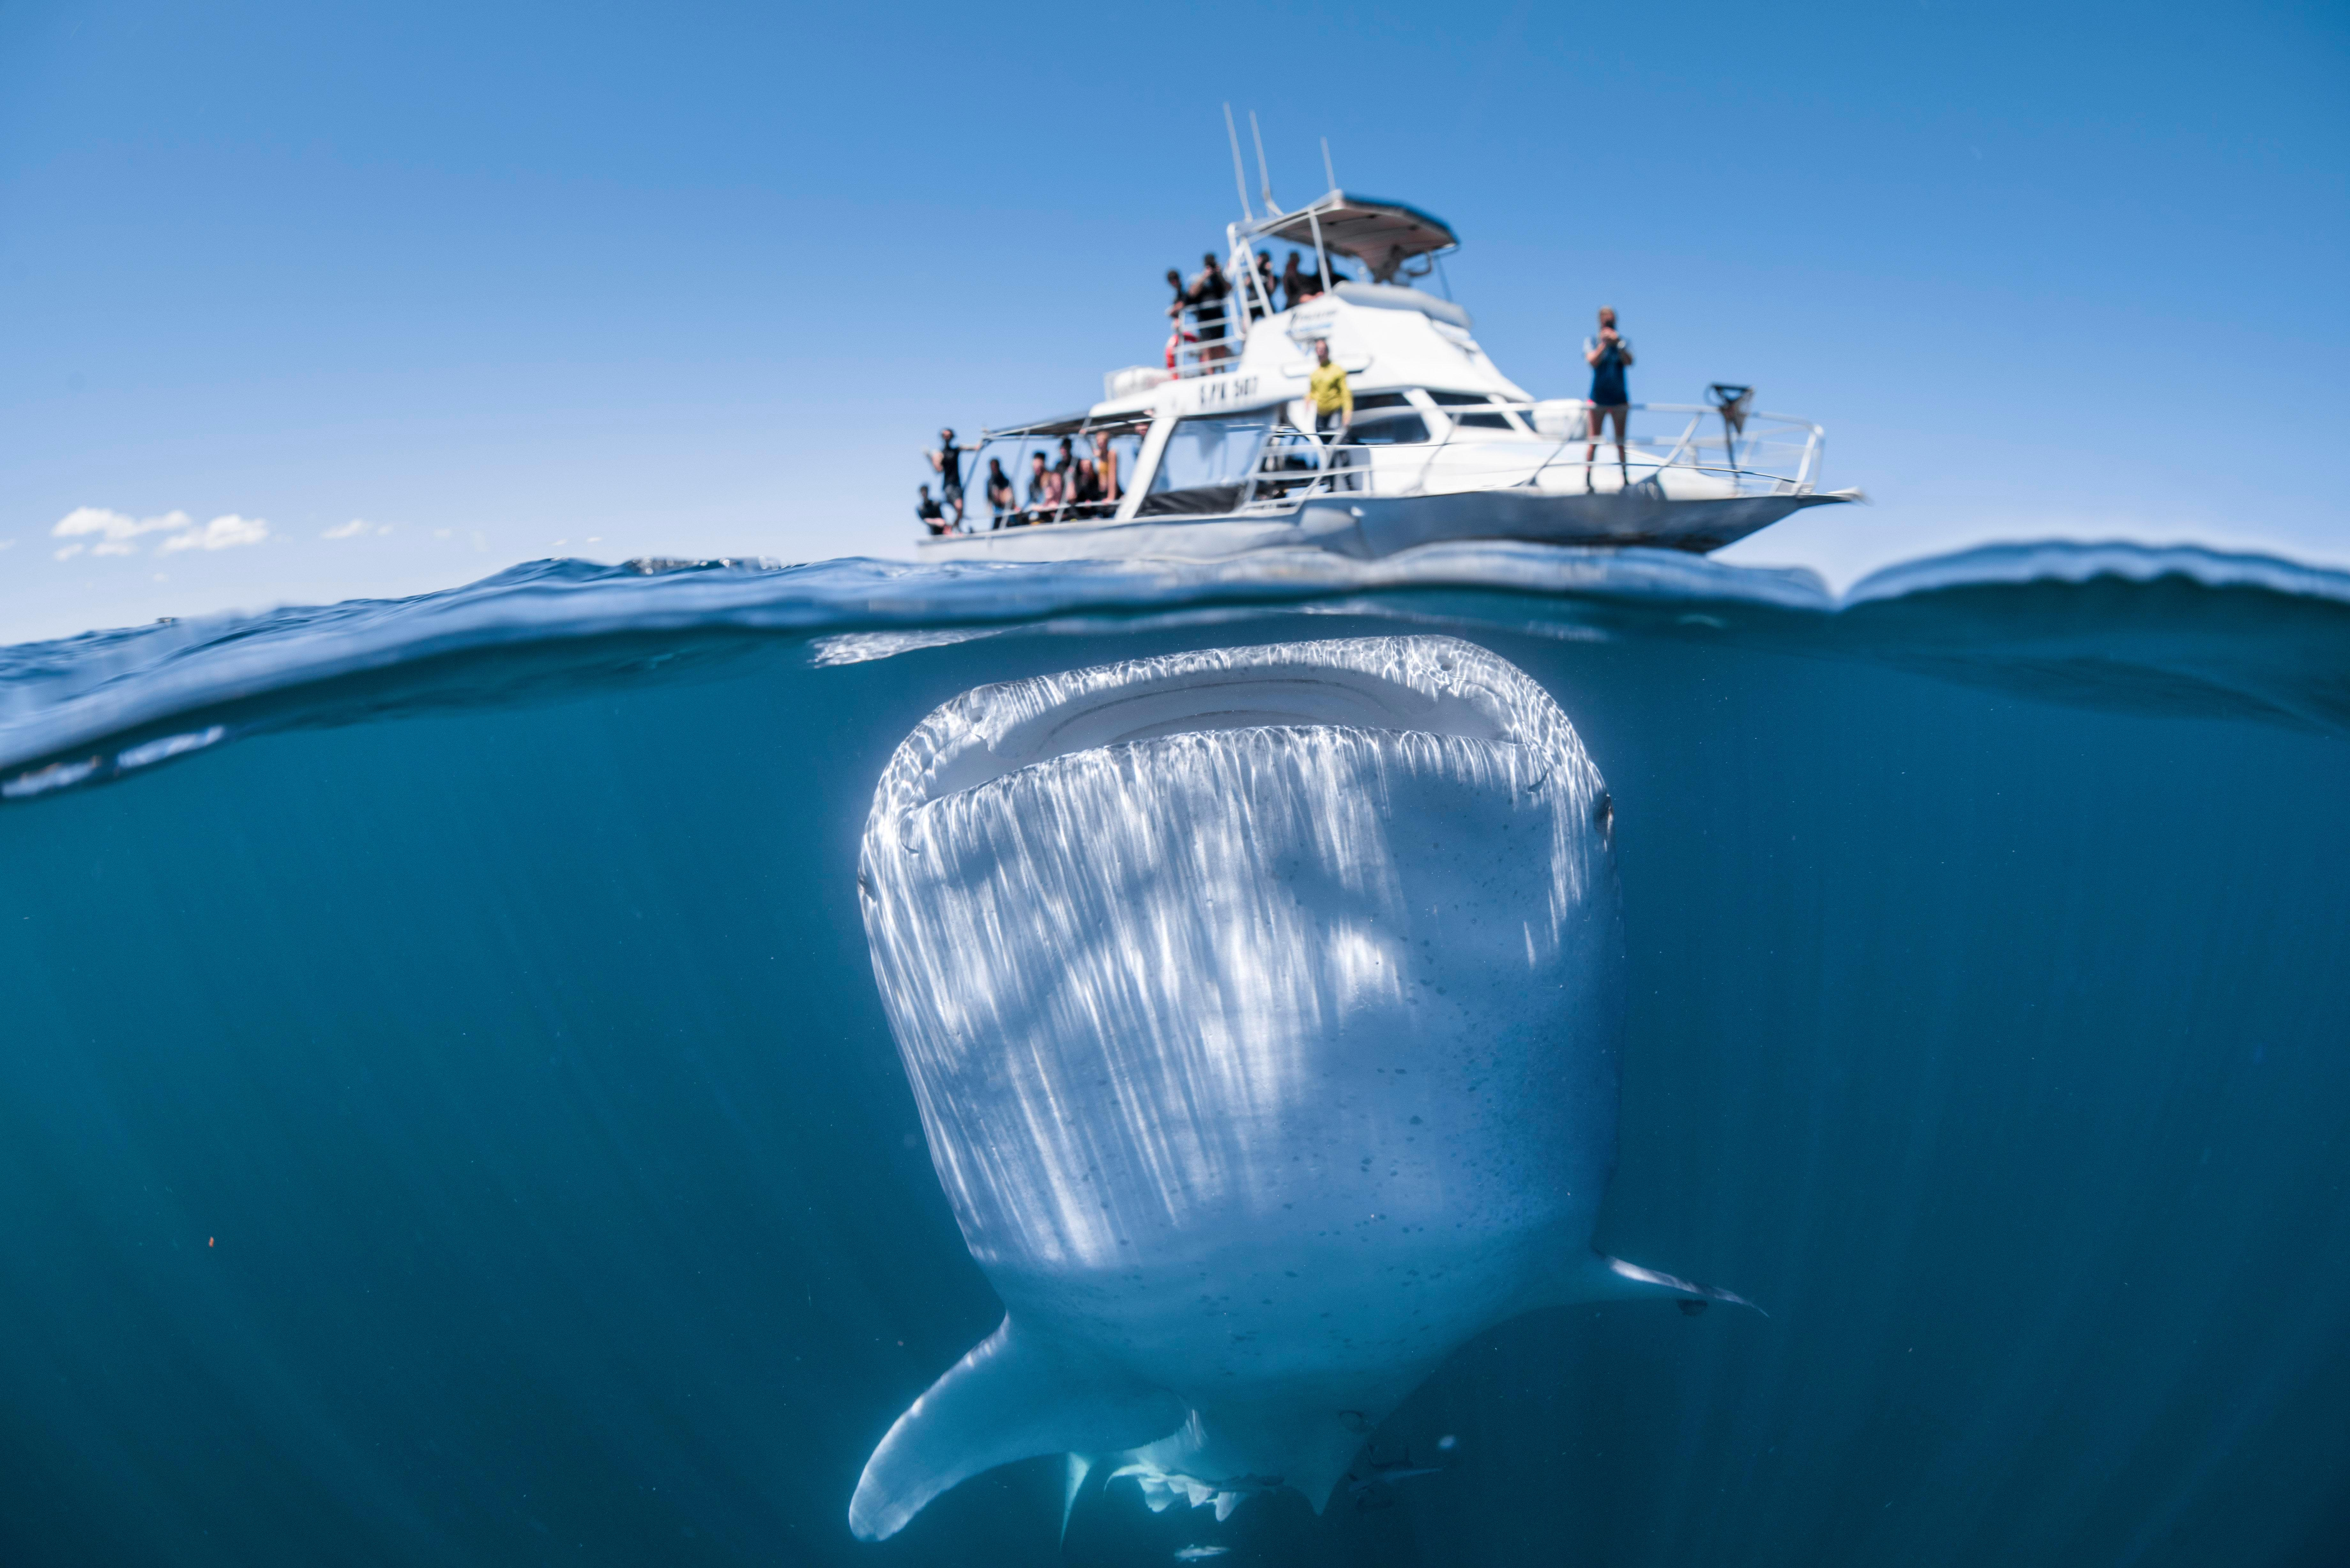 Incredible picture captured moment huge whale shark loomed underneath a boat of clueless tourists